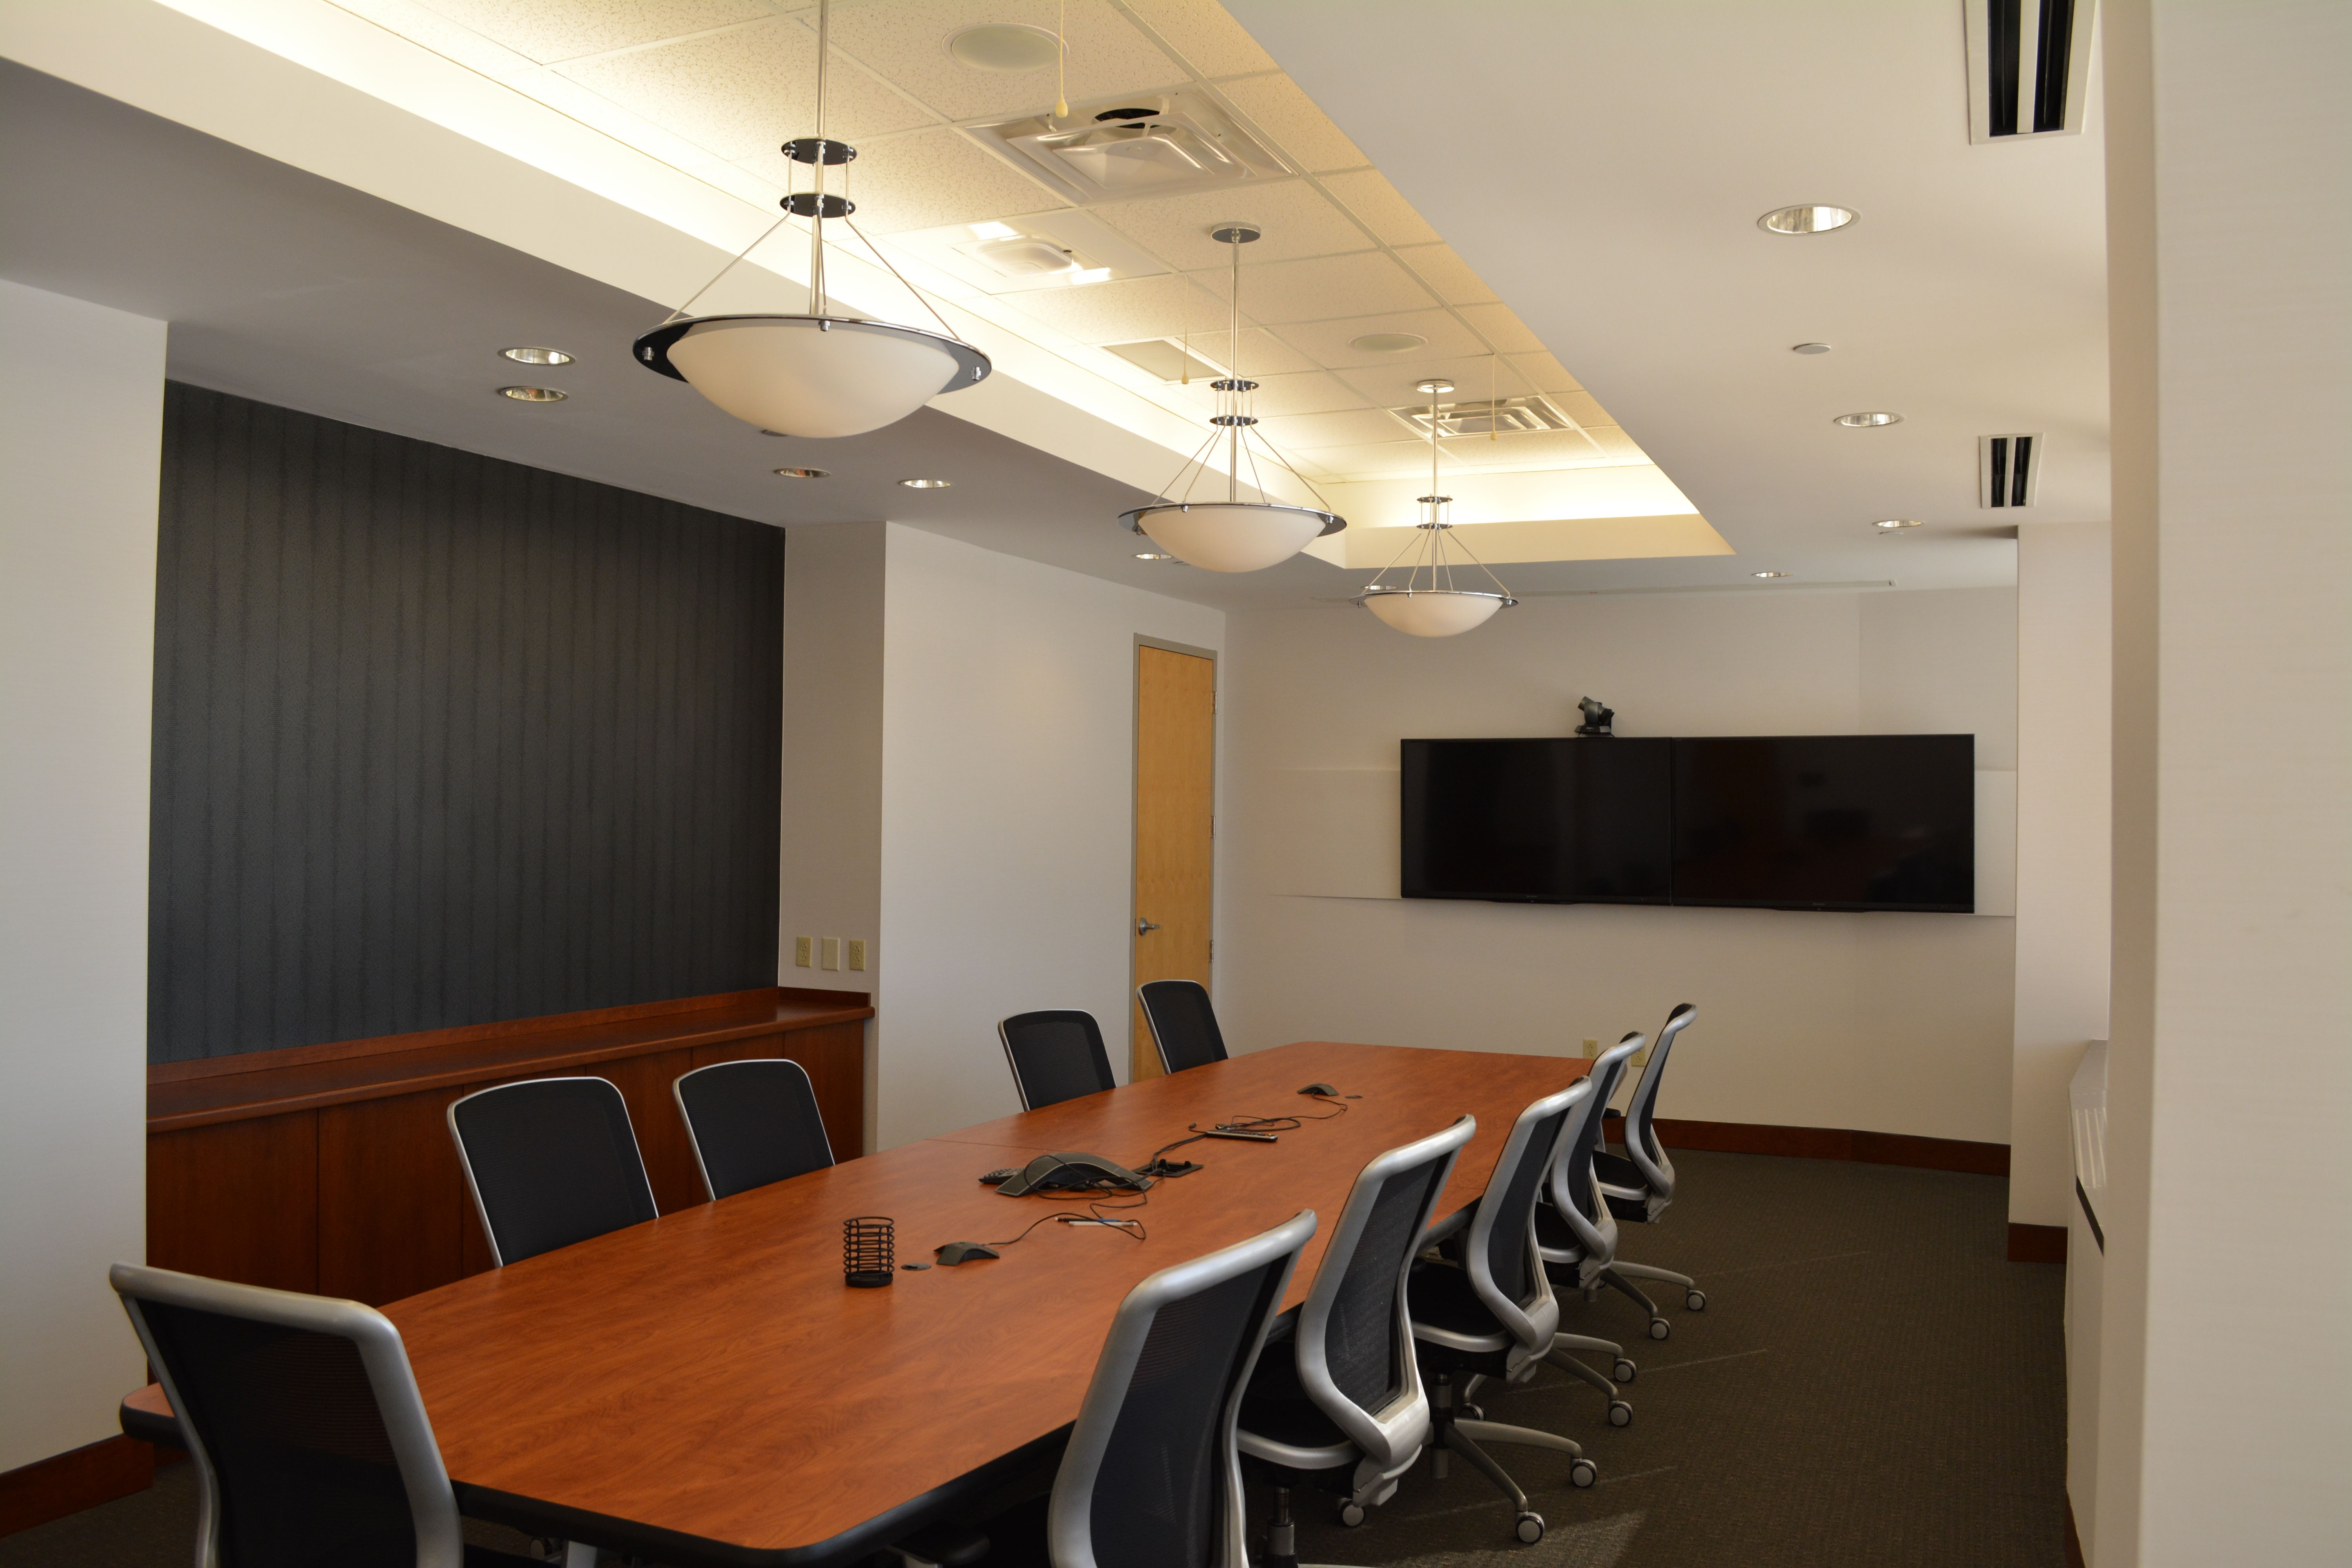 Conference Room Bulkhead Pendant Recessed Lights Cove Lighting Wallcovering Wood